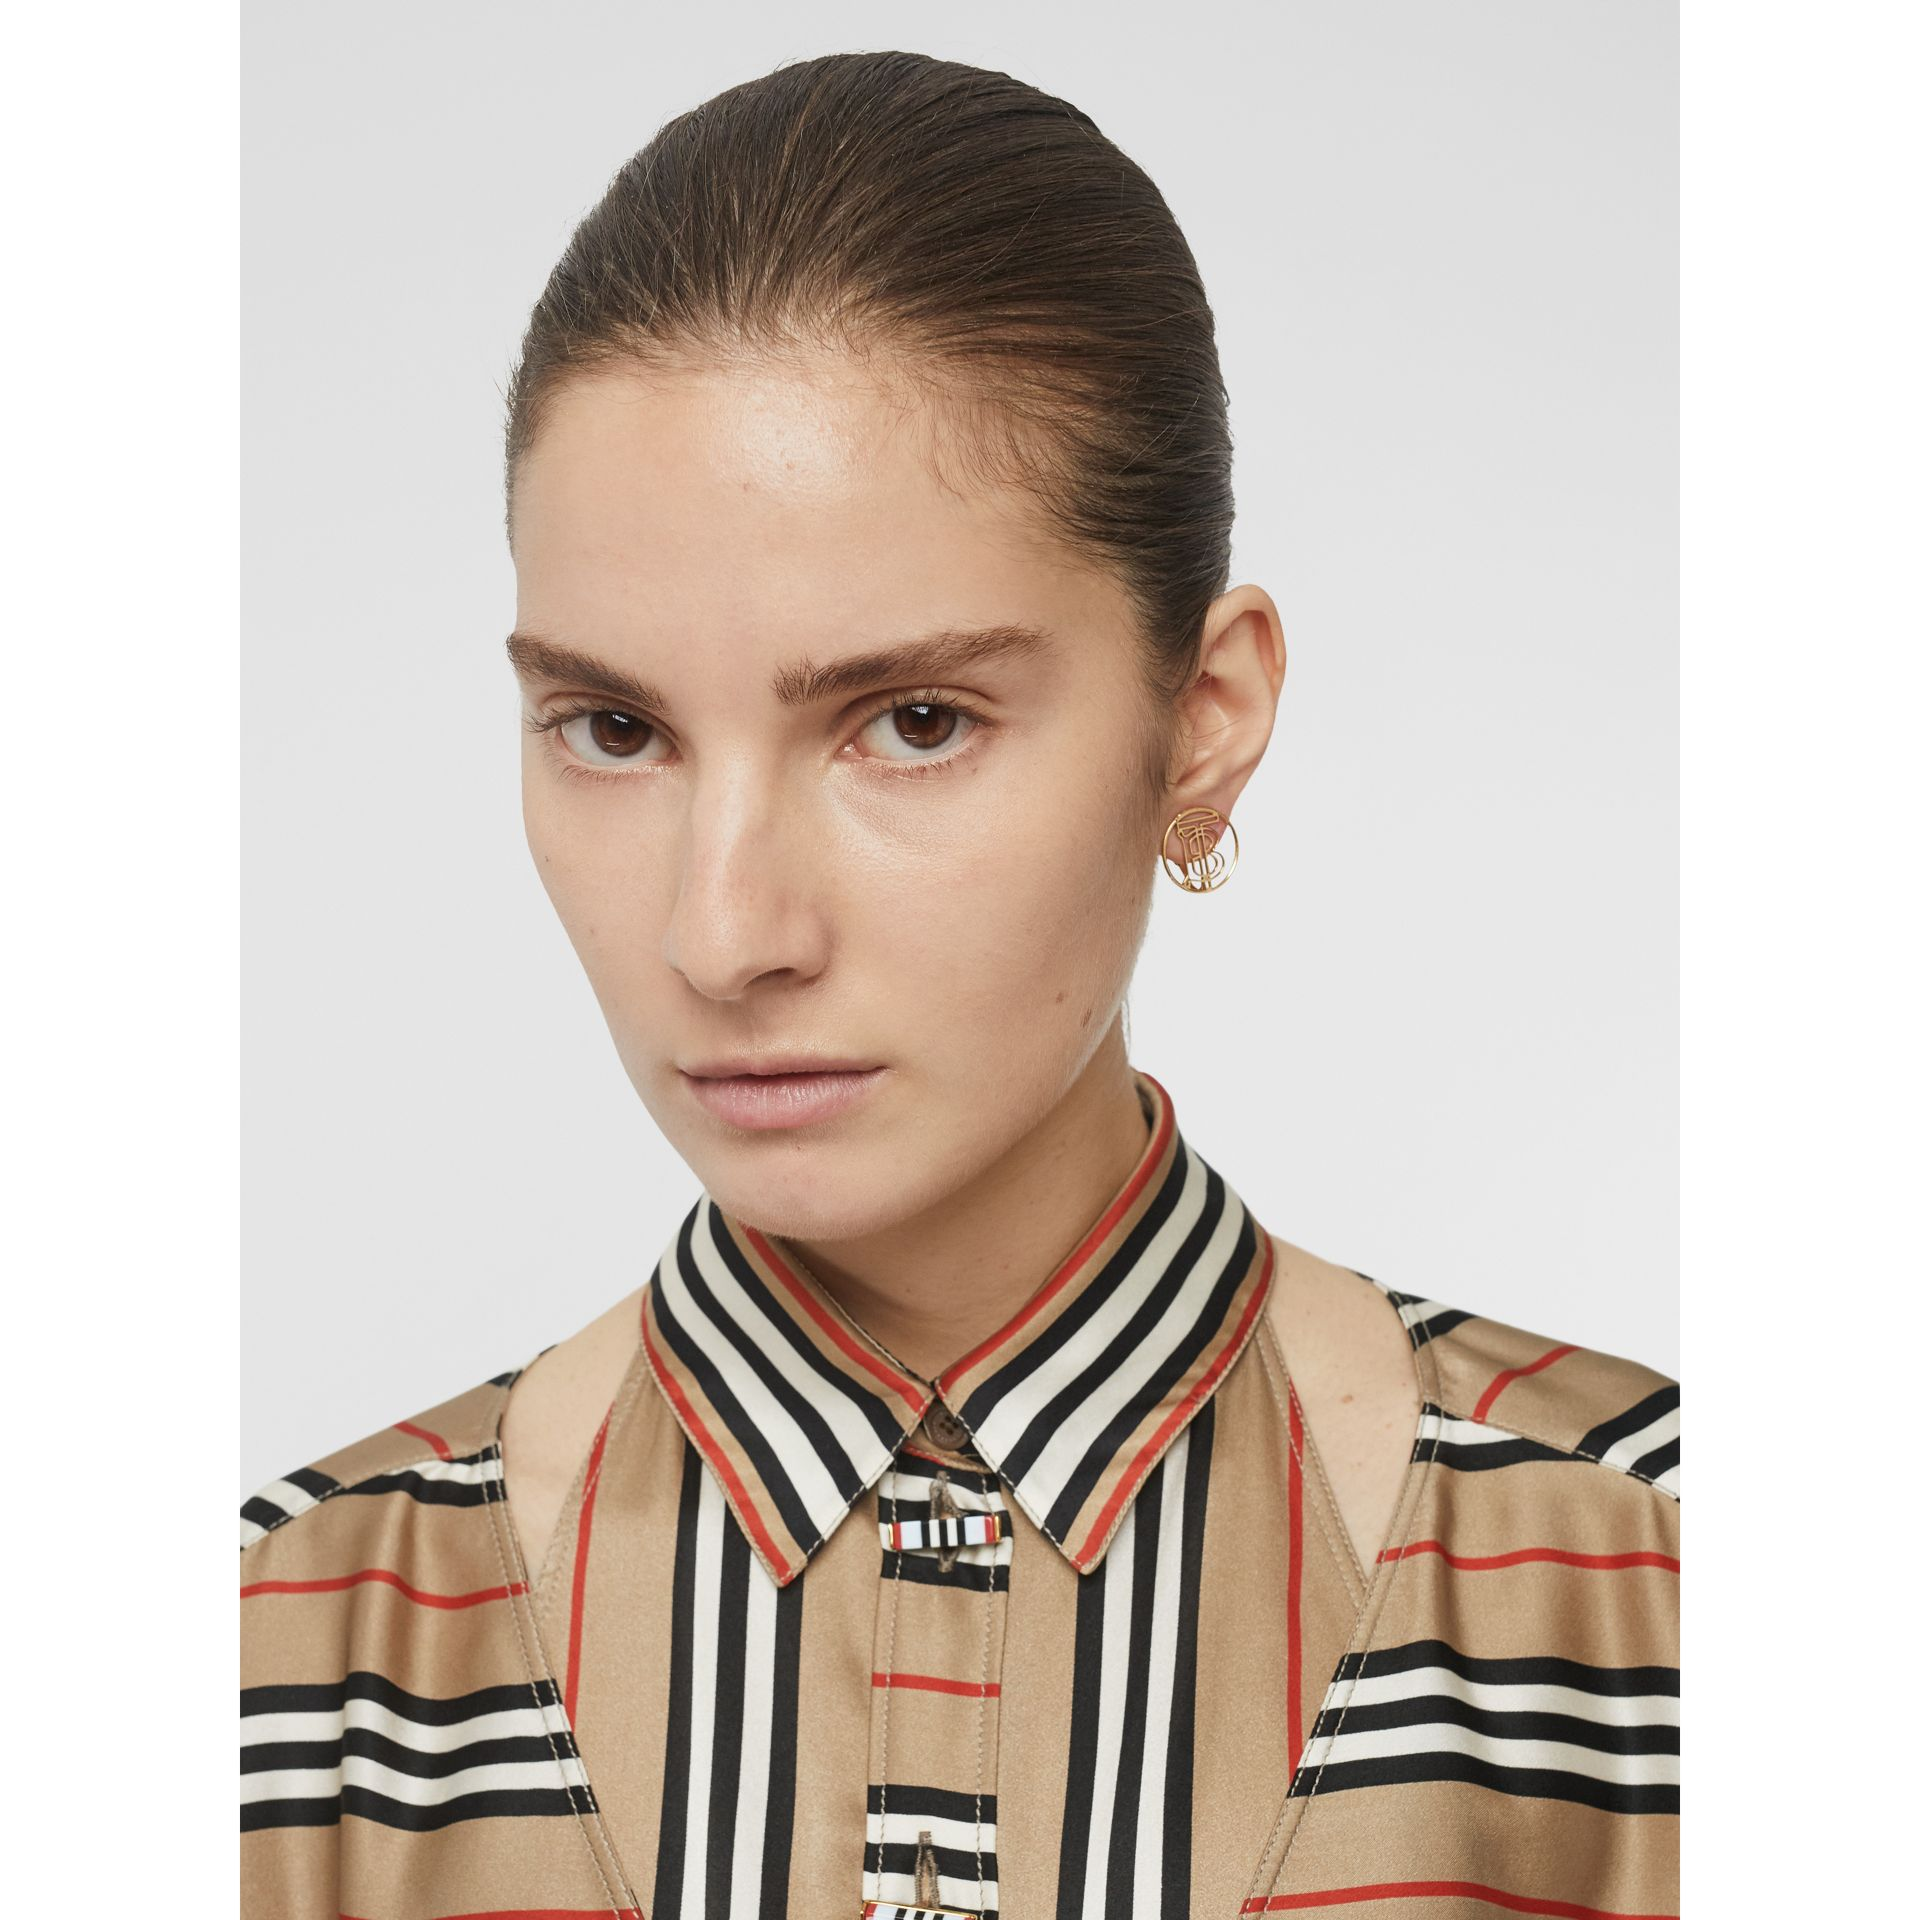 Cut-out Detail Icon Stripe Silk Shirt in Archive Beige - Women | Burberry - gallery image 5